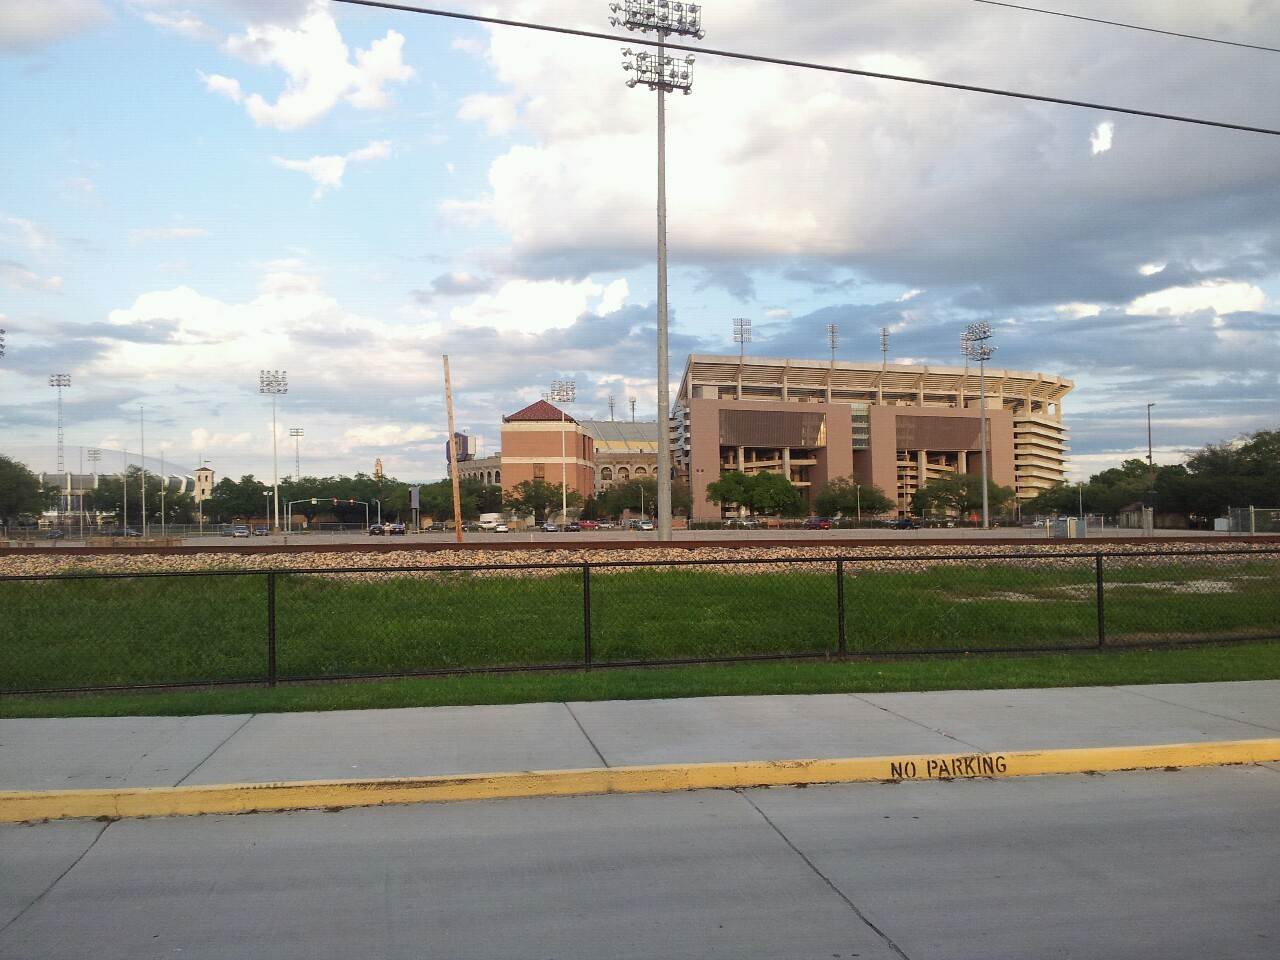 LSU's Tiger Stadium as seen from the practice facility.